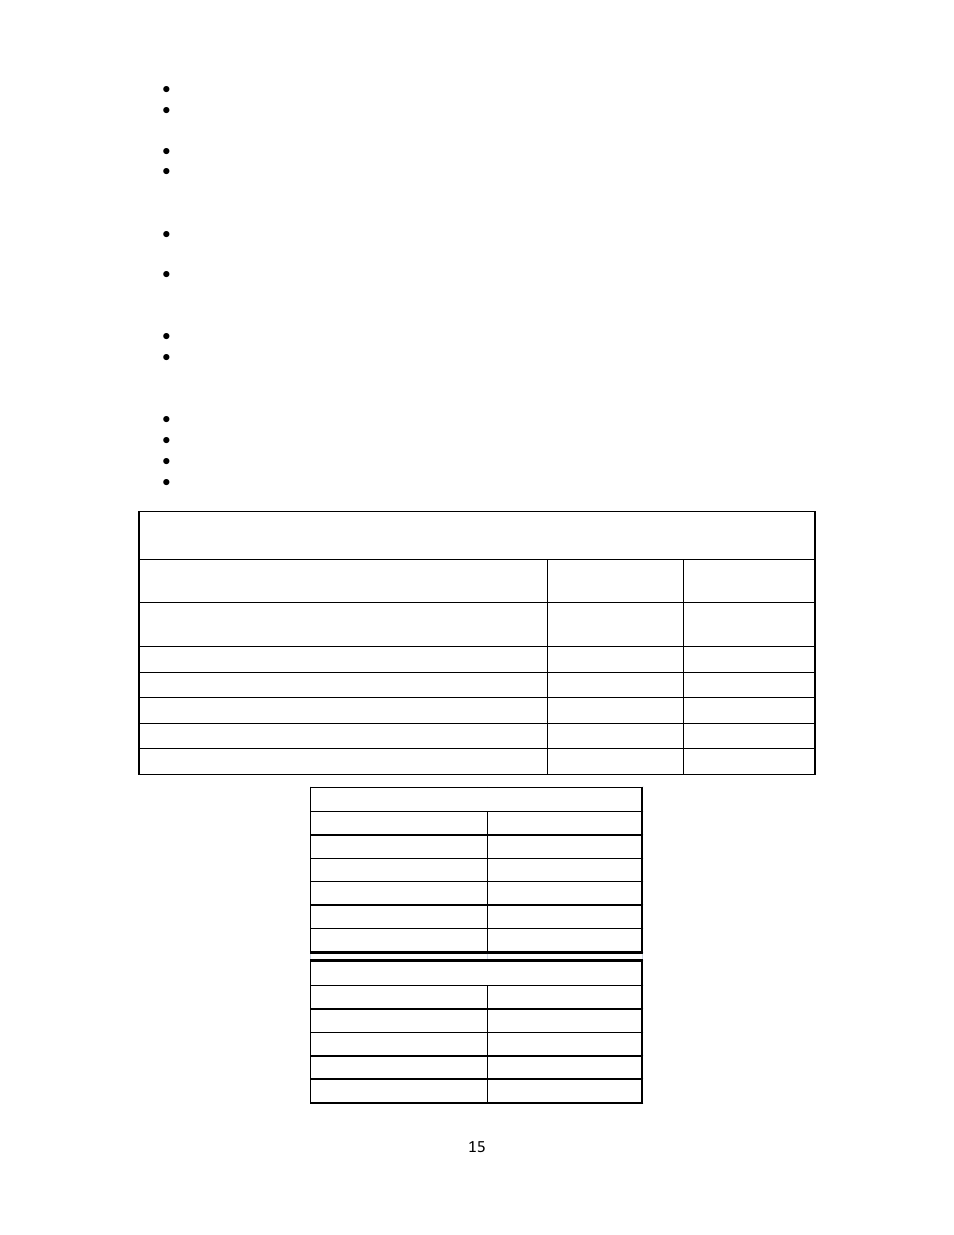 medium resolution of torque specifications wright serial 55138 and higher user manual page 15 40